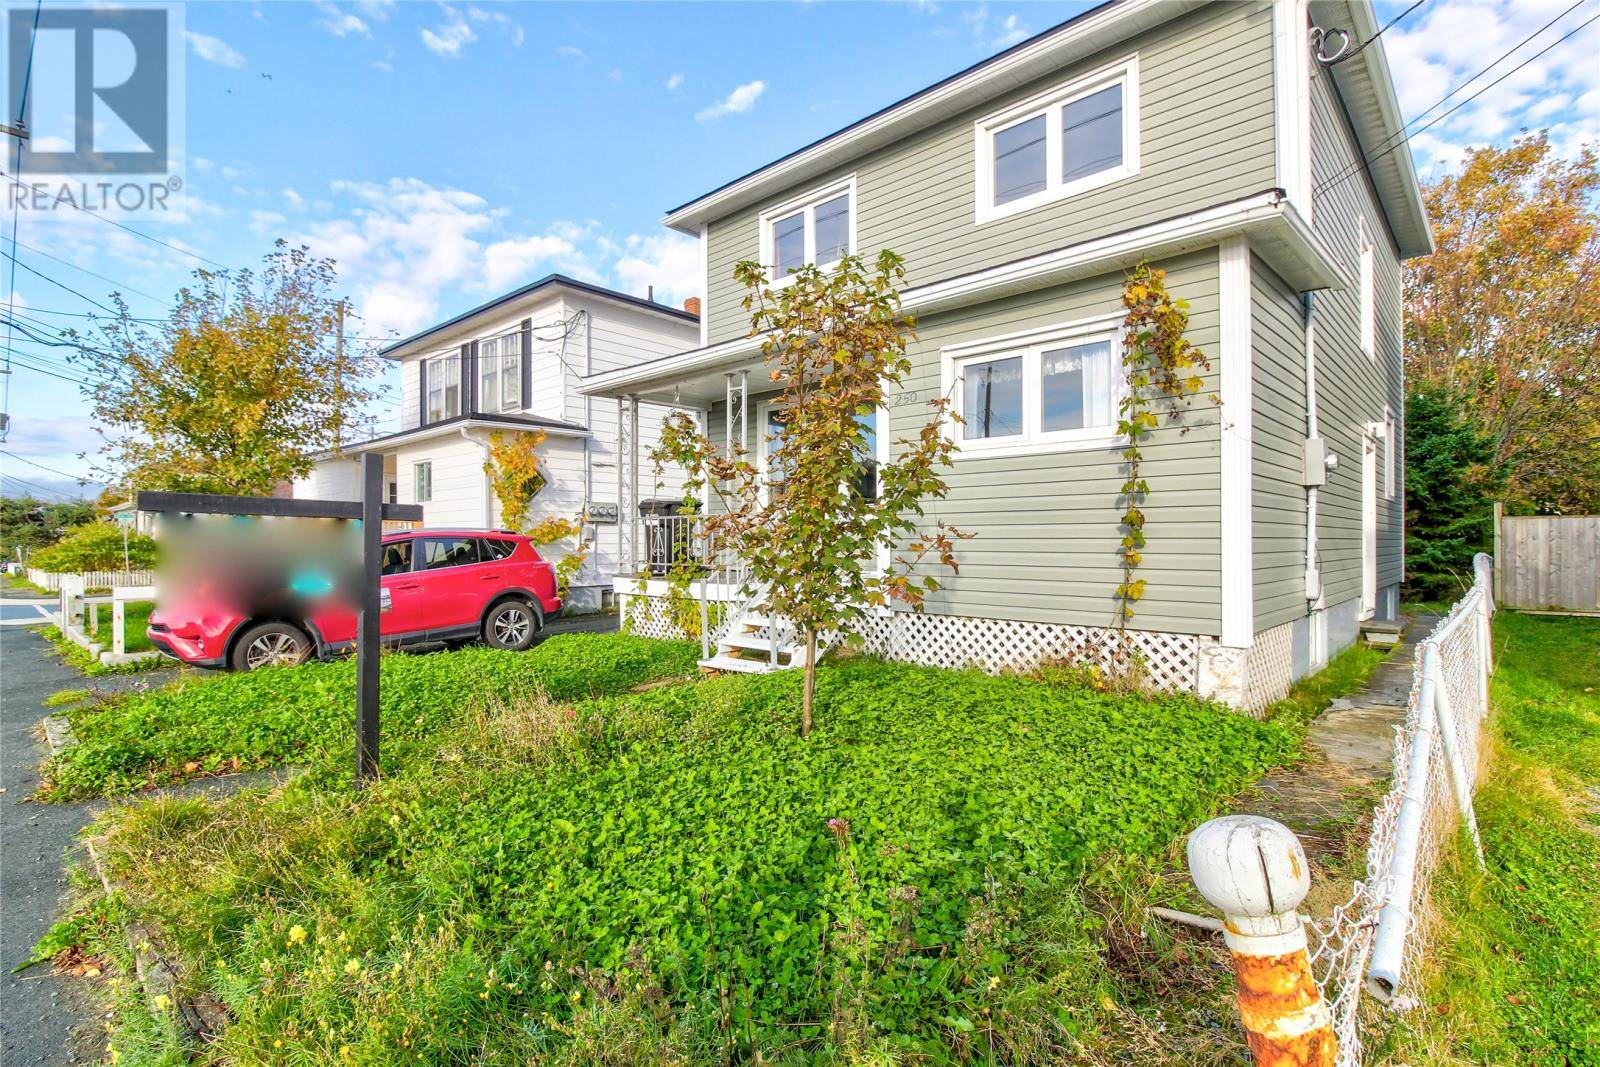 House for sale at 250 Pennywell Rd St John's Newfoundland - MLS: 1206732